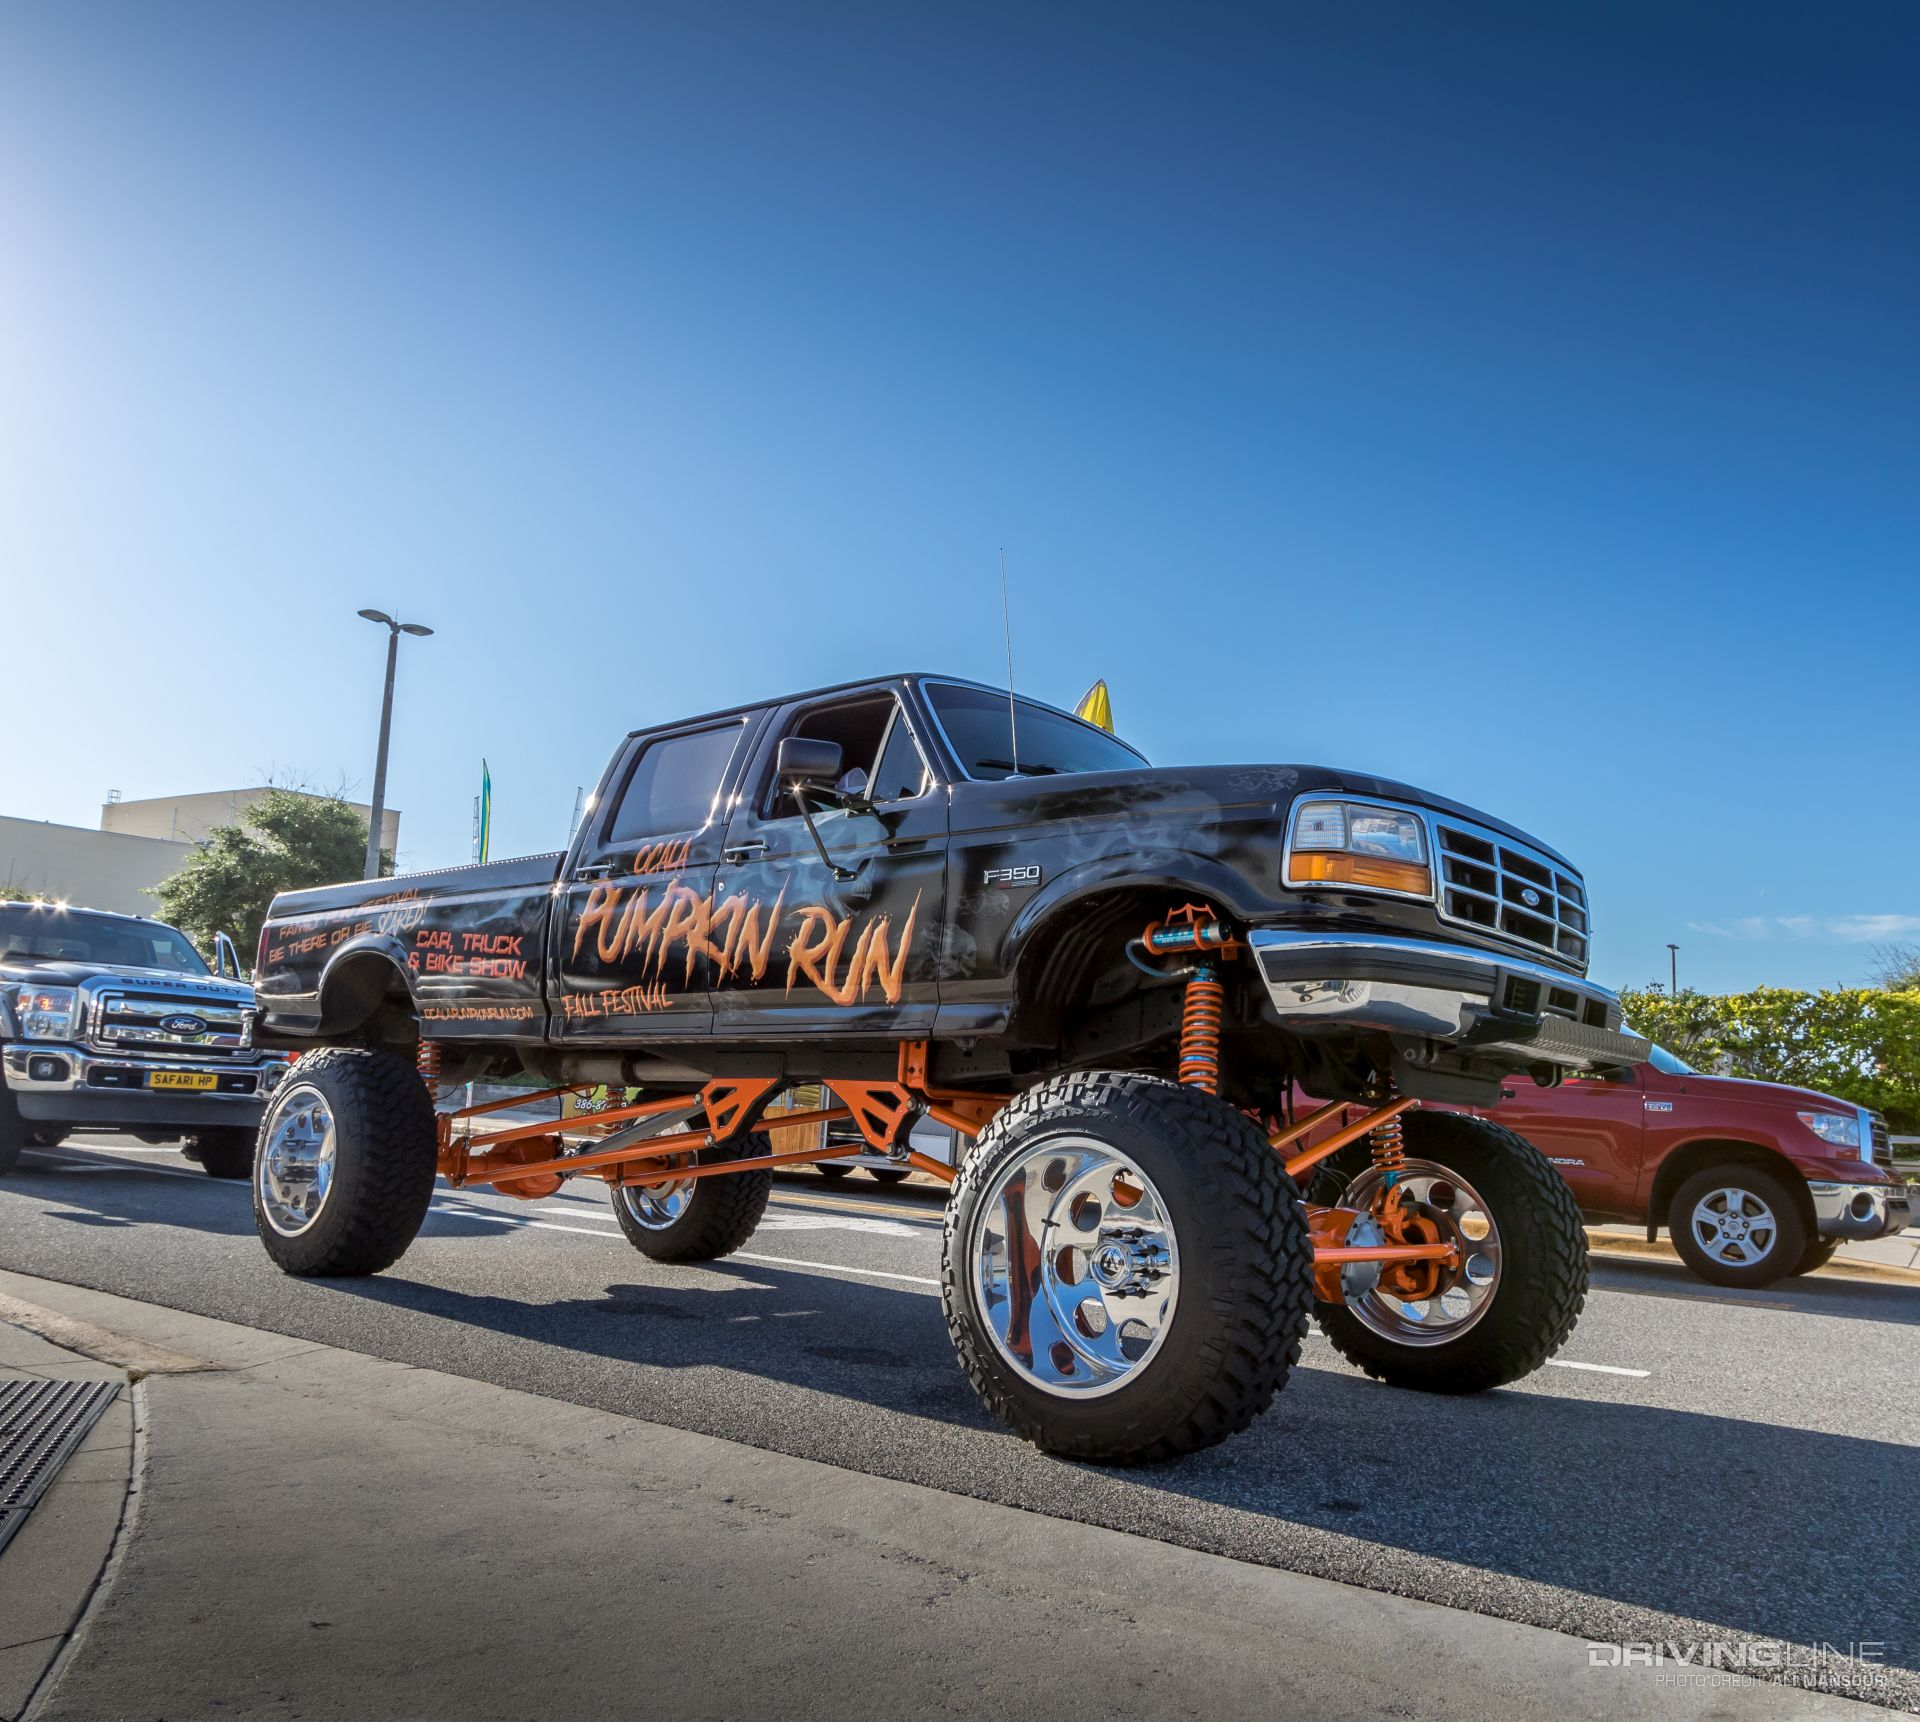 Driving On Daytona Beach >> Battle of the Bling: The 2017 Daytona Truck Meet | DrivingLine